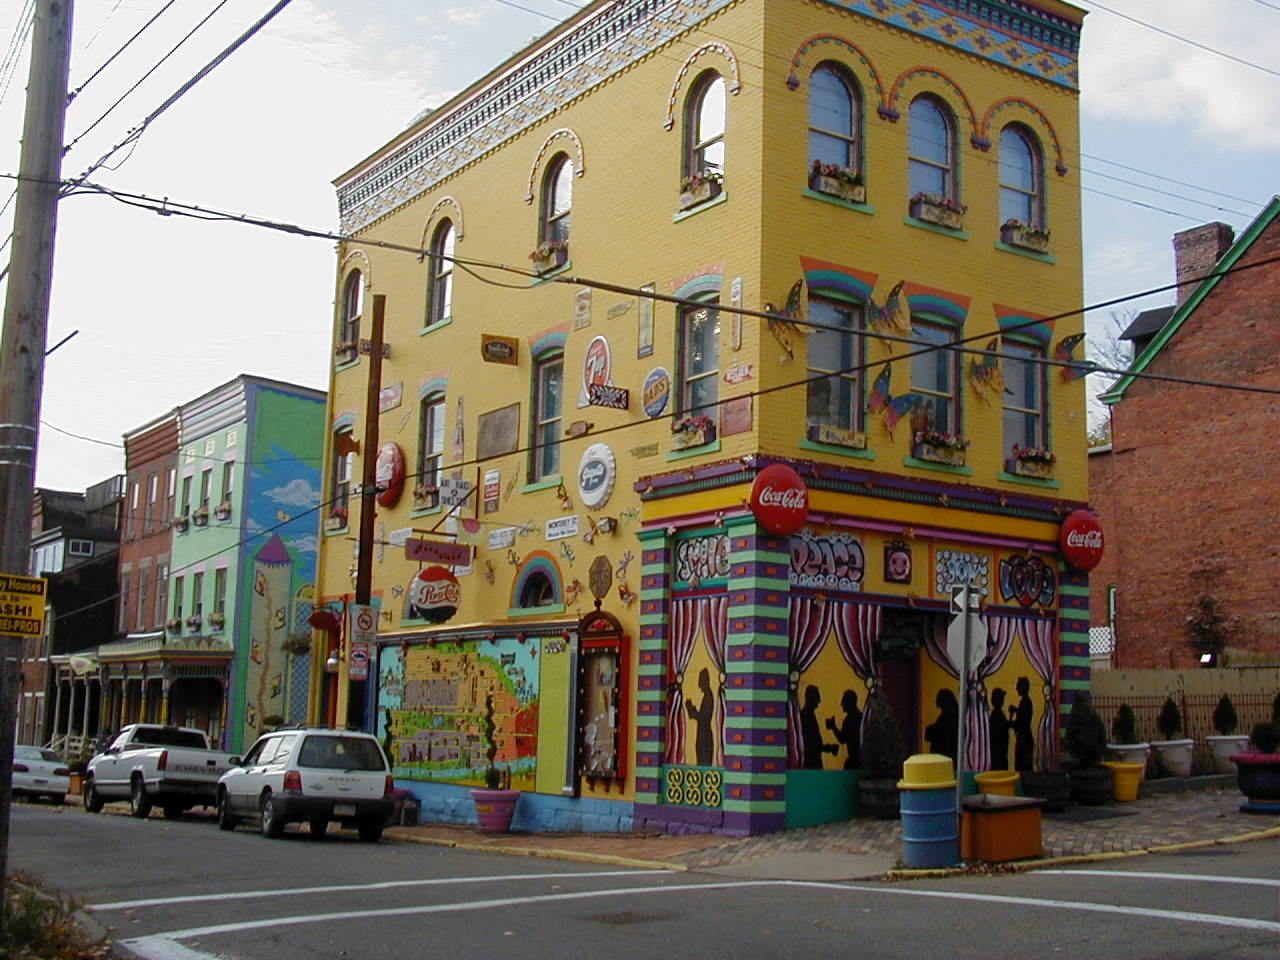 A uniquely decorated business in the district.